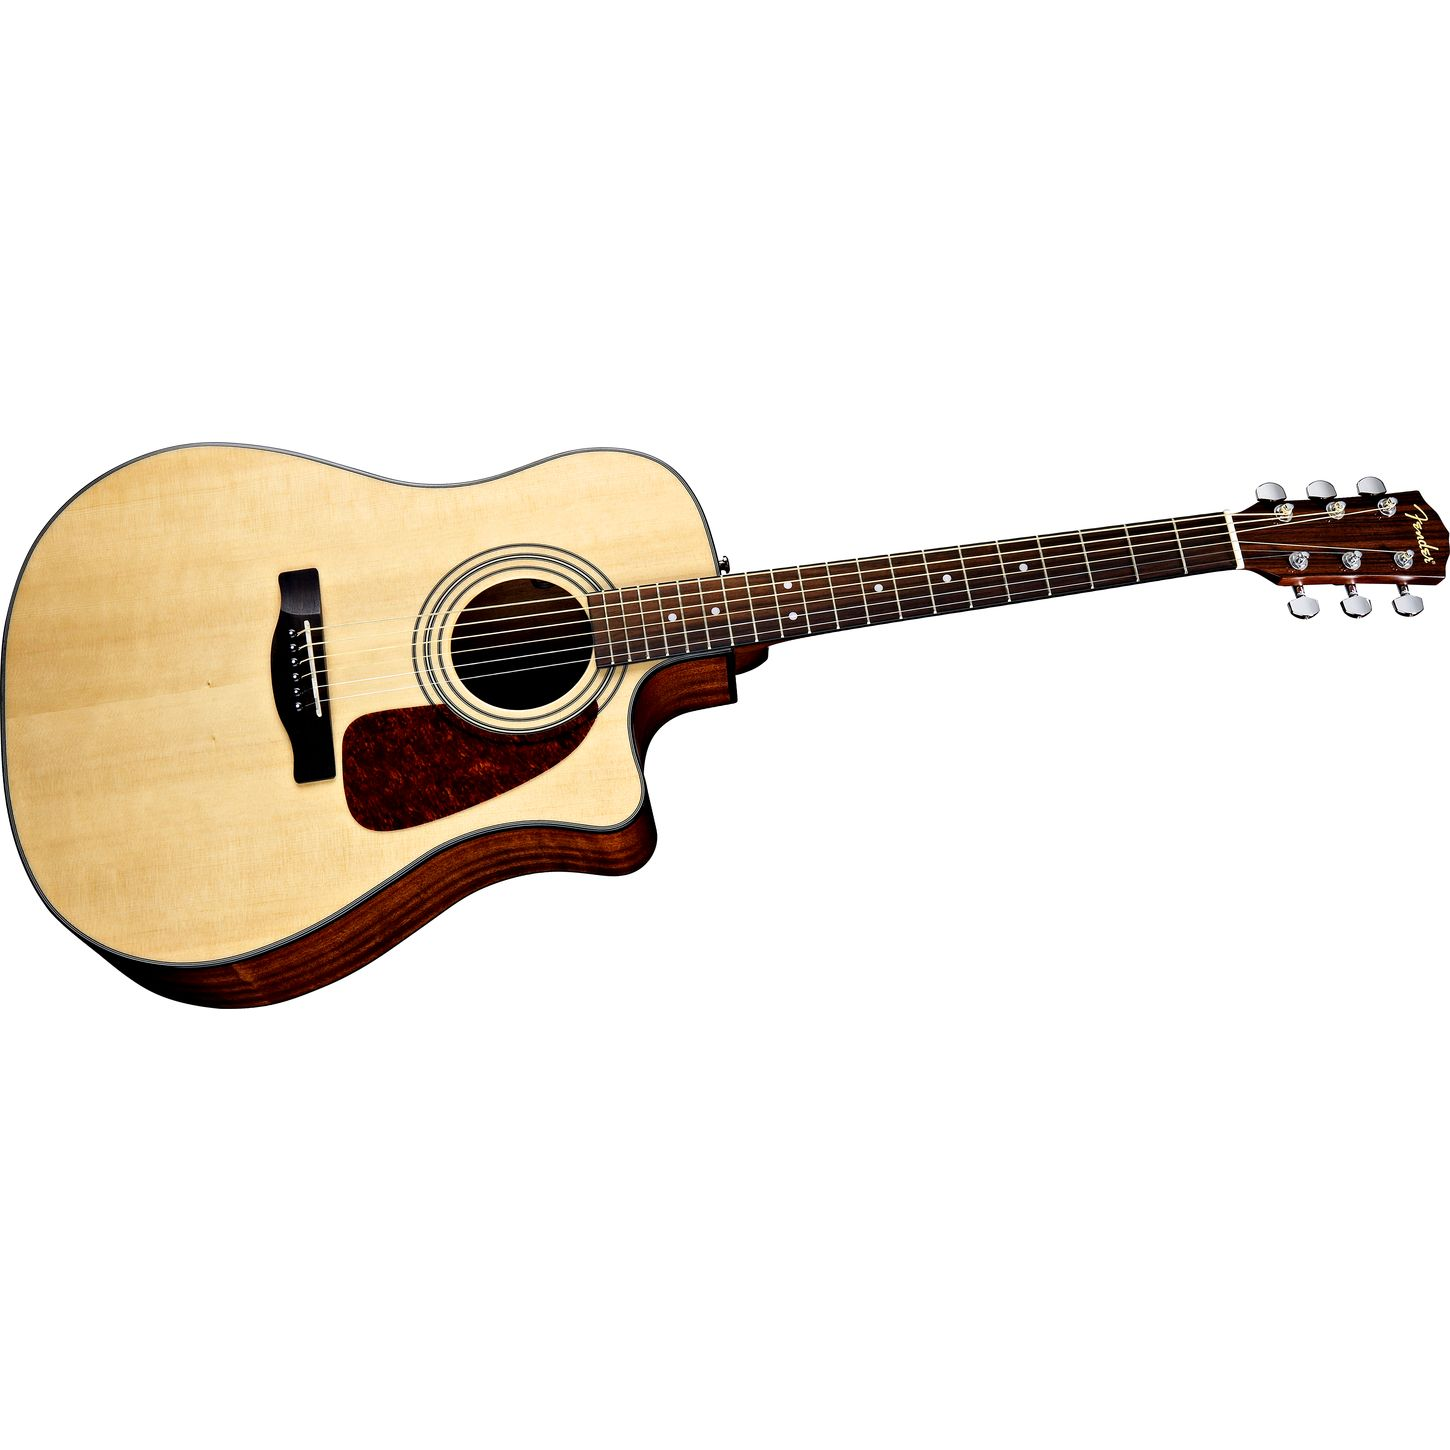 Fender Acoustic Electric Guitar : fender cd140sce acoustic electric guitar musician 39 s friend ~ Vivirlamusica.com Haus und Dekorationen